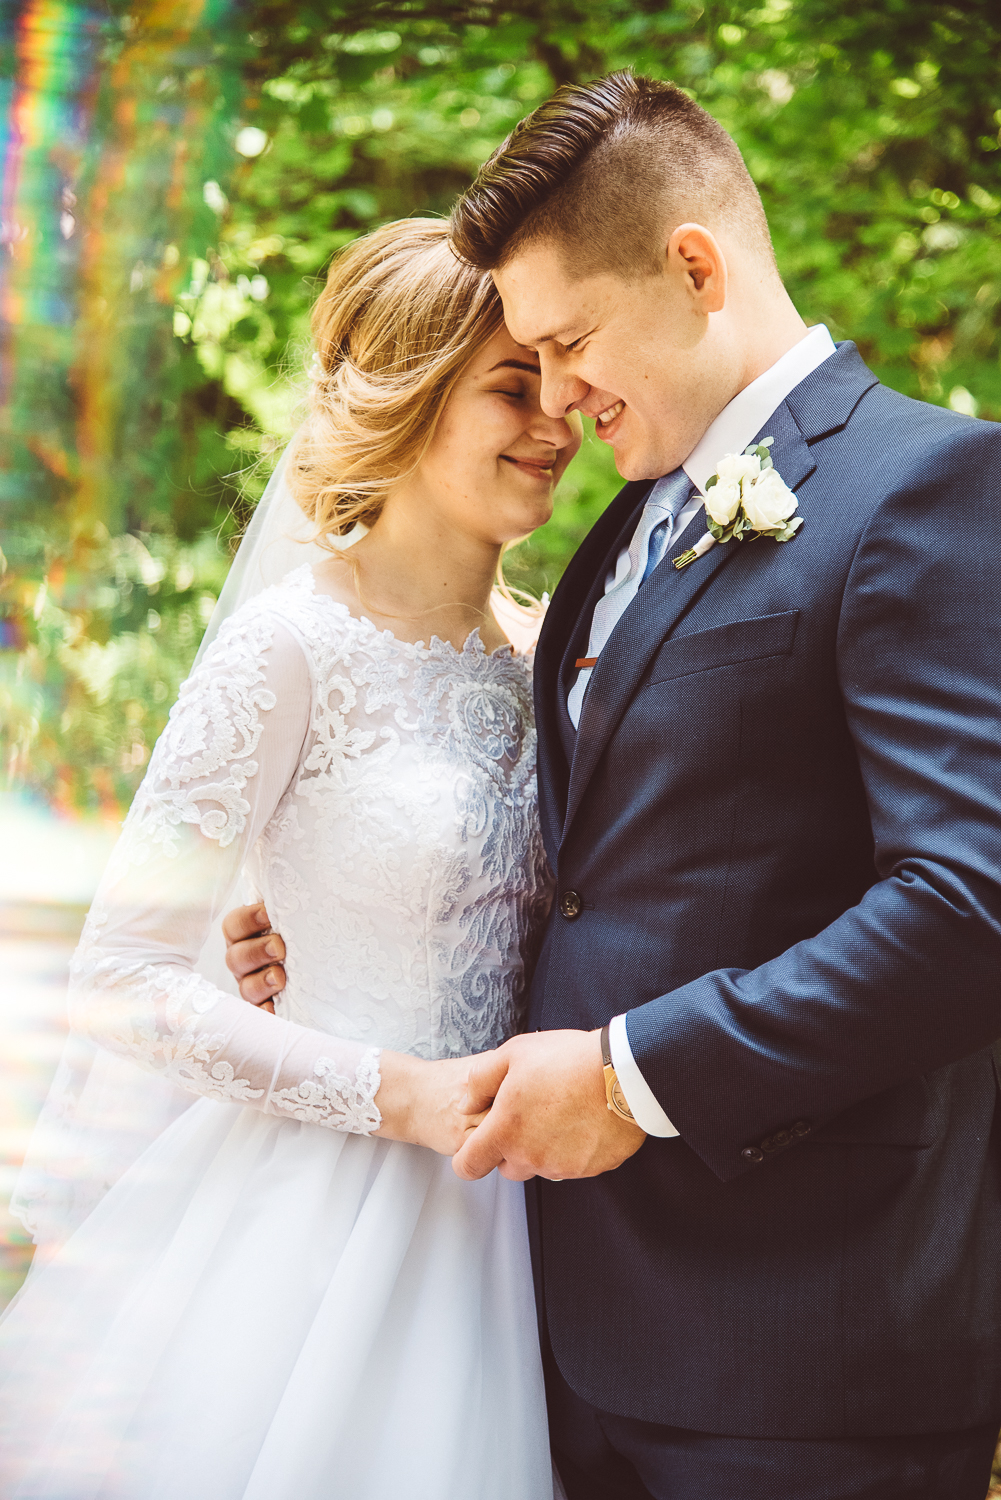 Ruvim & Olga - Devin is an amazing photographer, she takes unique and amazing shots and made me and my wife feel super comfortable during our wedding day, and definitely made that day unforgettable would definitely recommend her to anyone who wants the best 10/10!!!